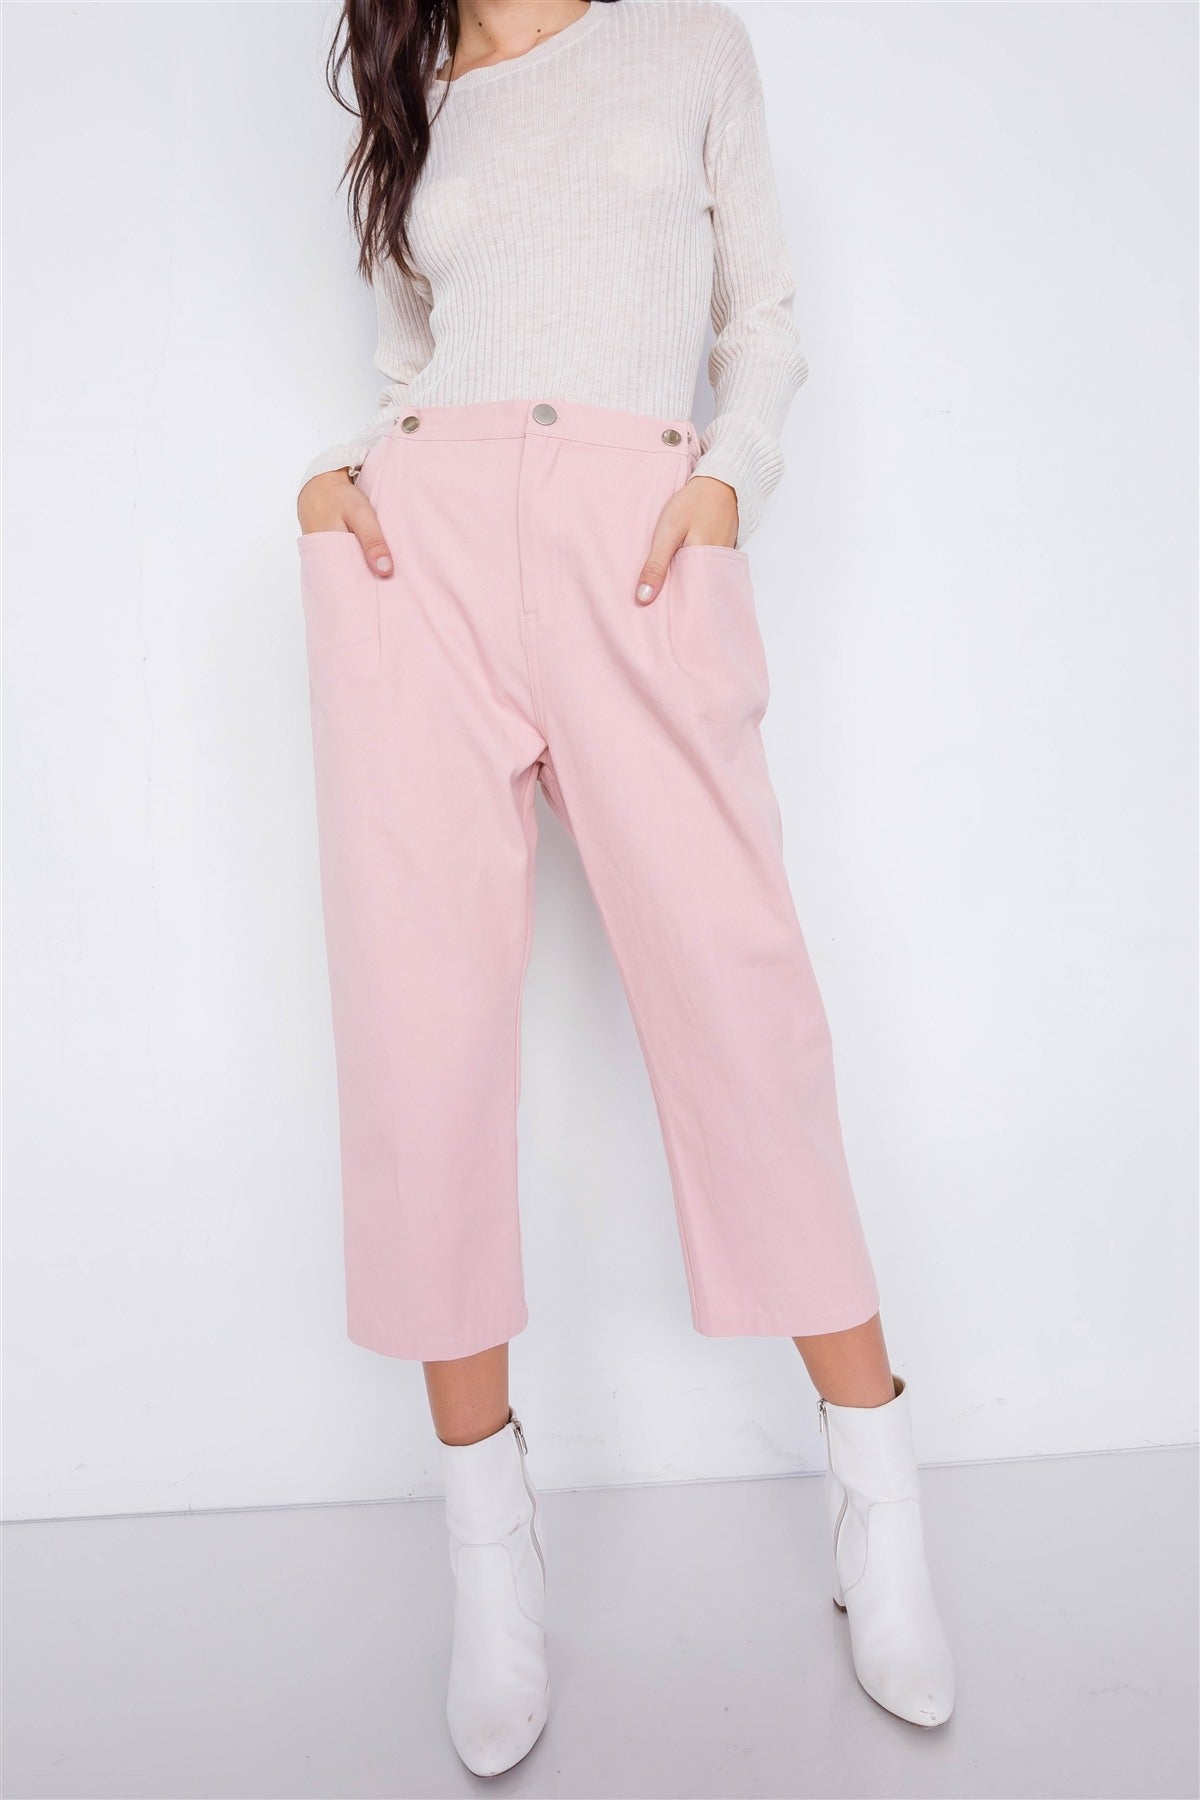 Pastel Chic Solid Ankle Wide Leg Adjustable Snap Waist Pants - De Bawa Inc.